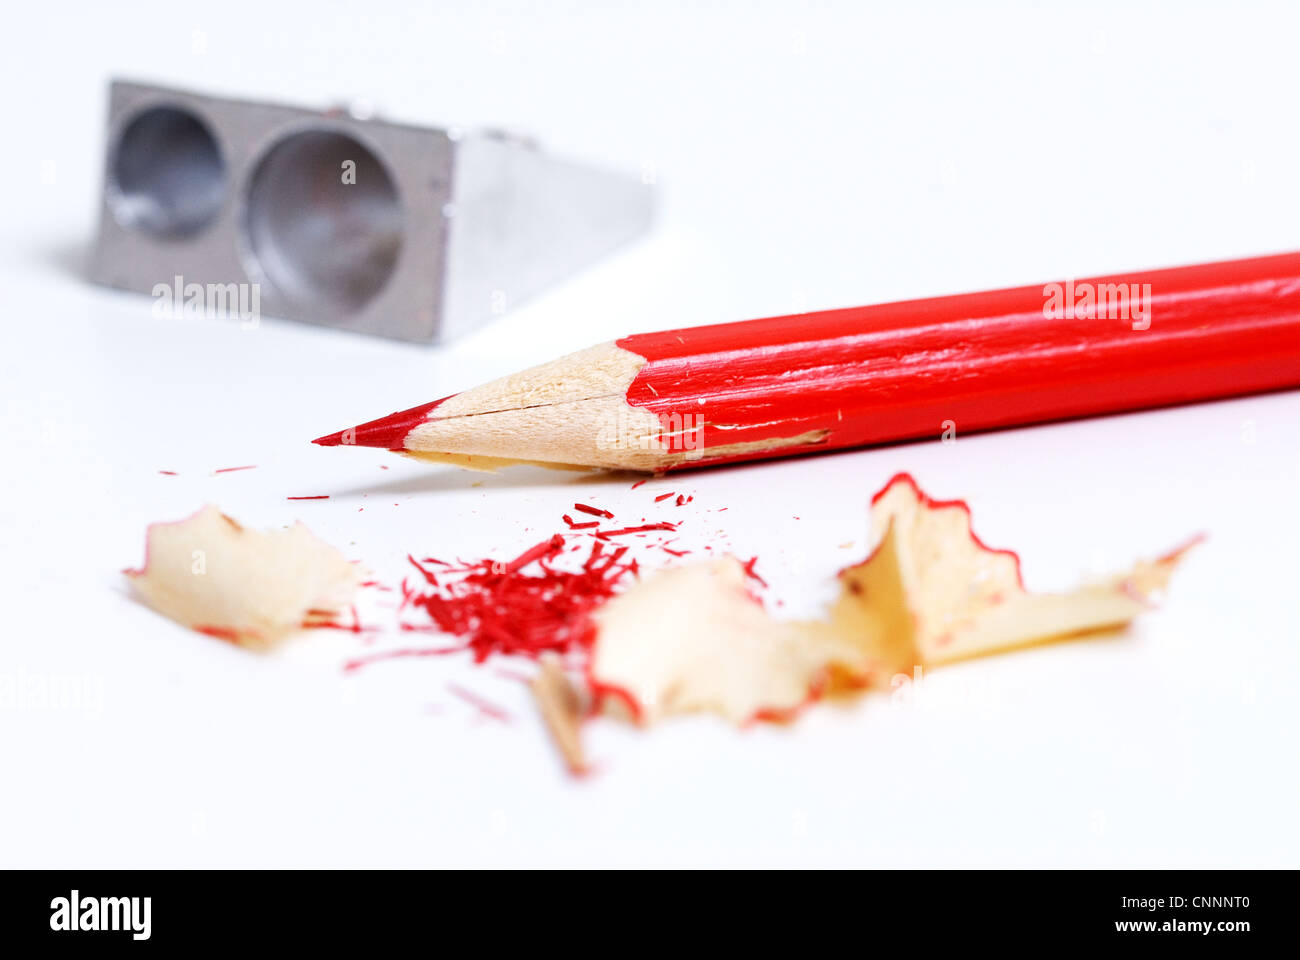 Red coloured pencil and sharpener on white background. - Stock Image